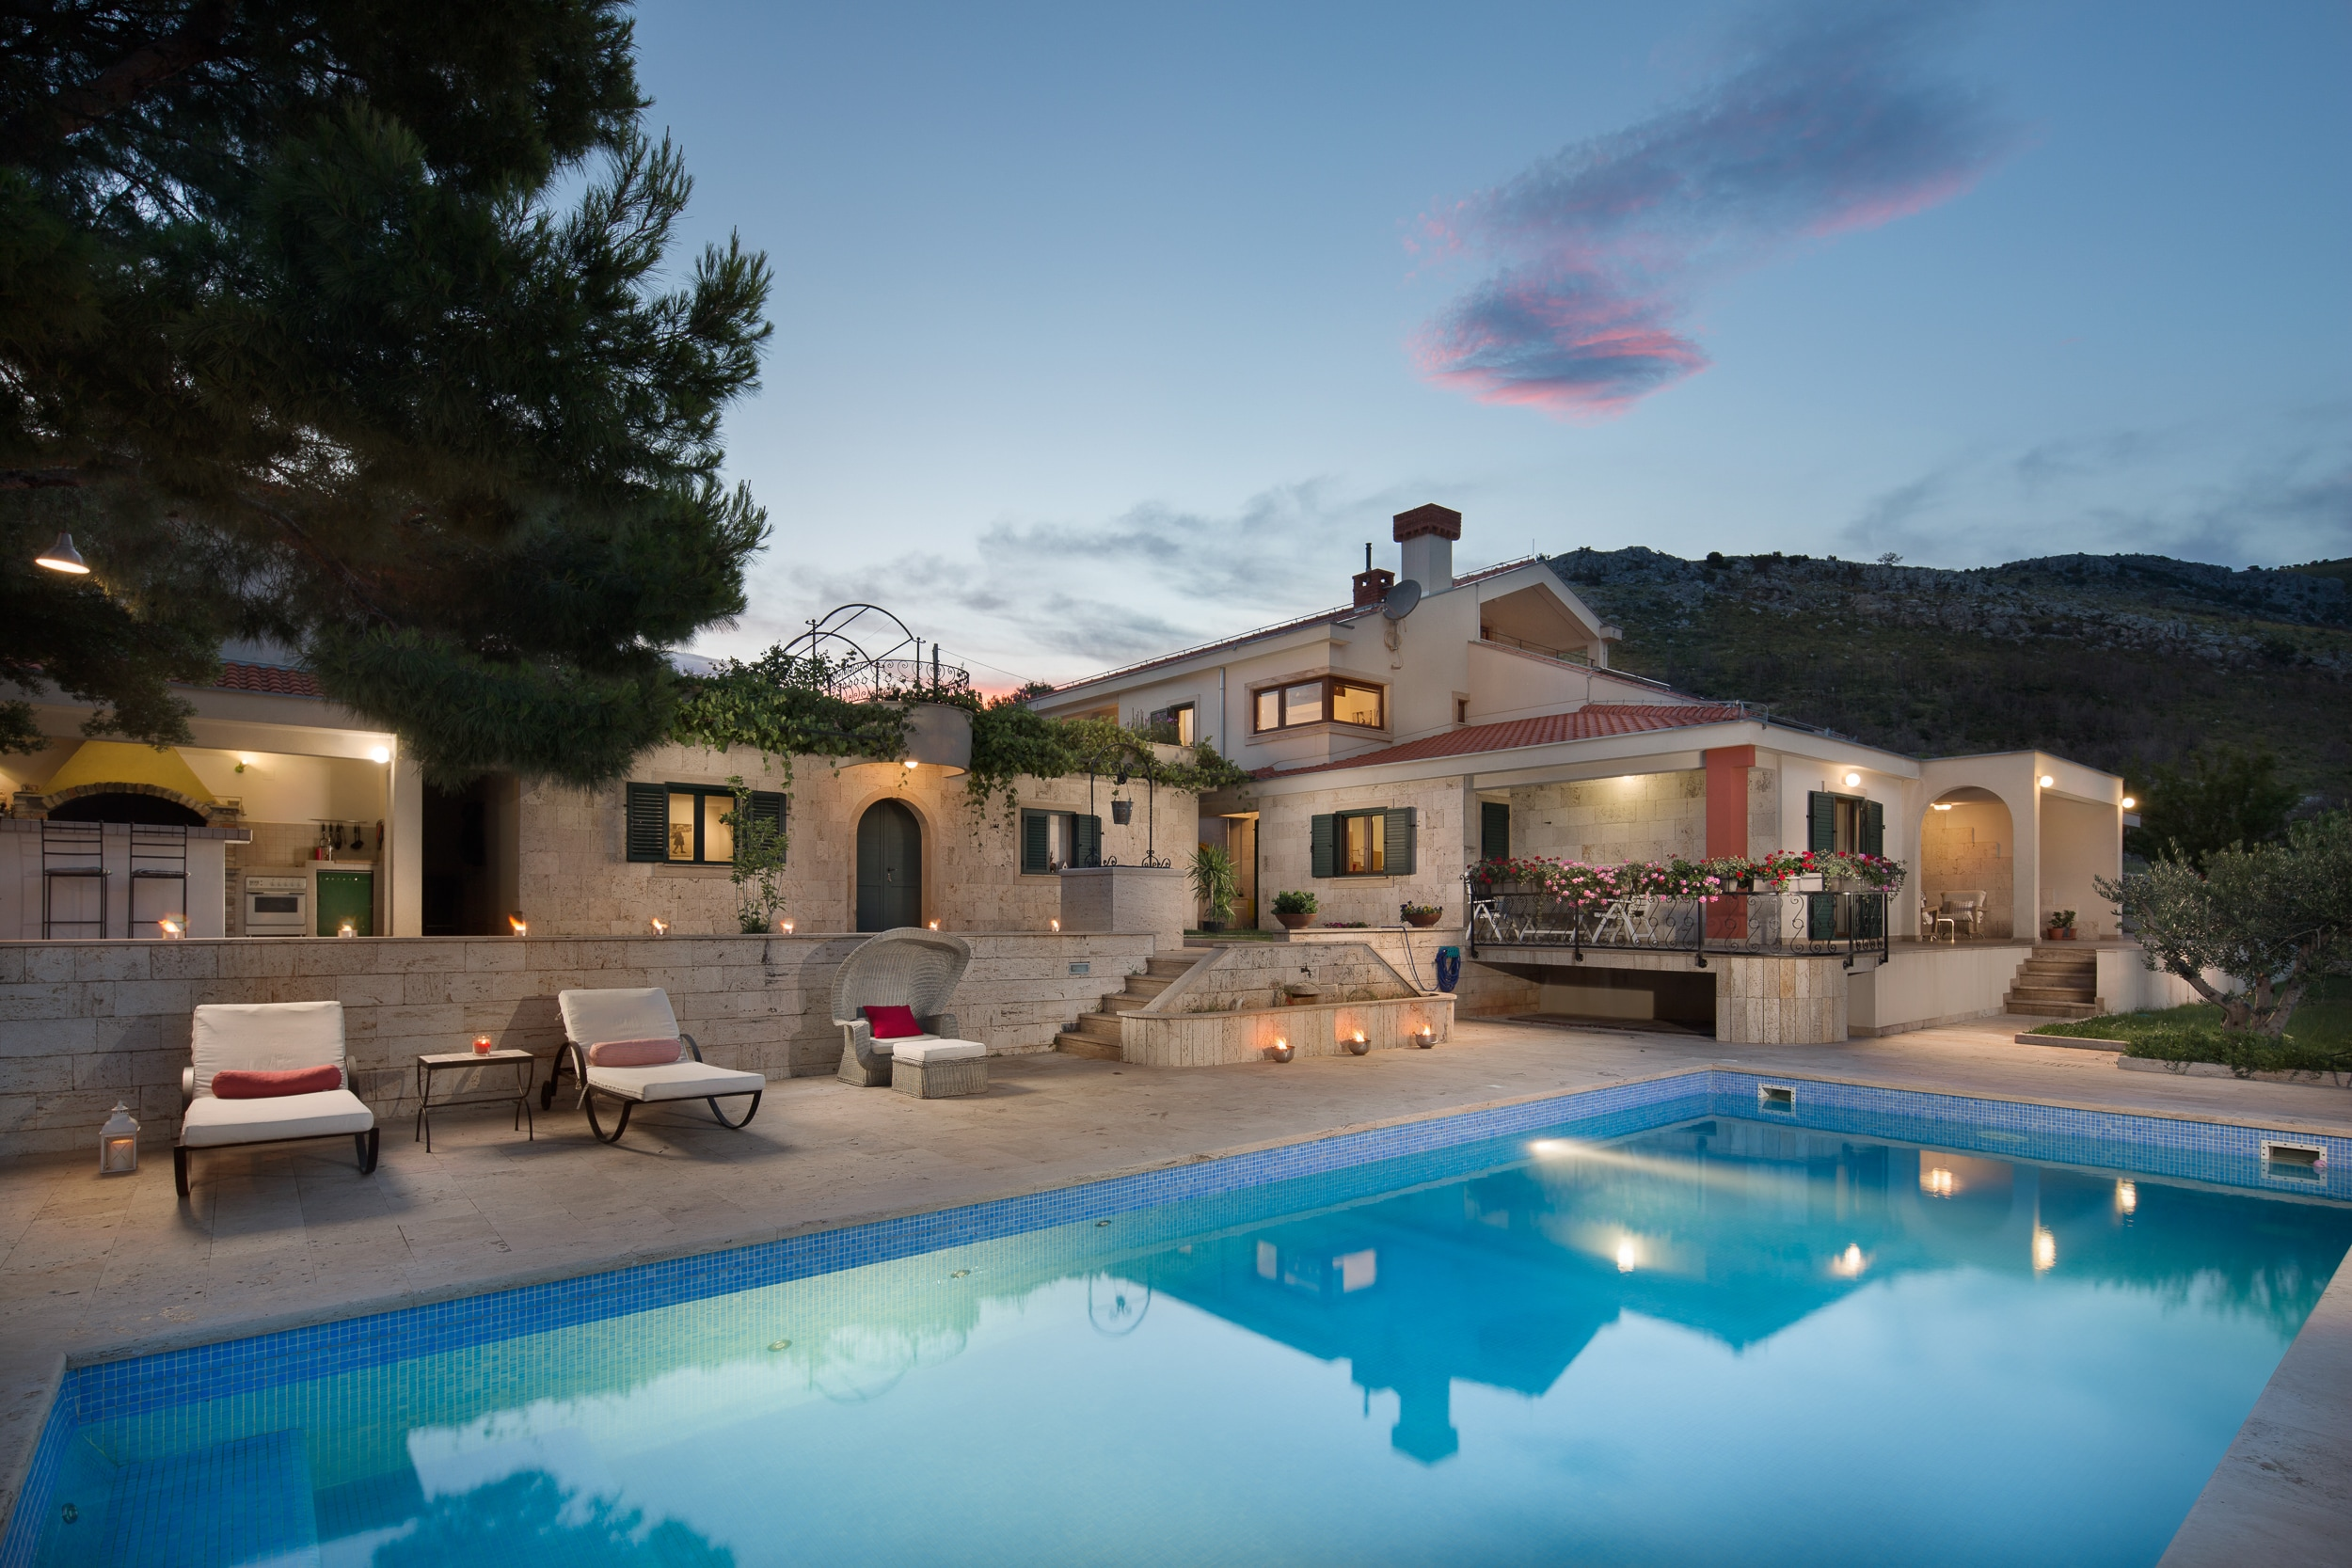 Property Image 1 - Picturesque Estate Surrounded by Olive Groves Perfect for Events